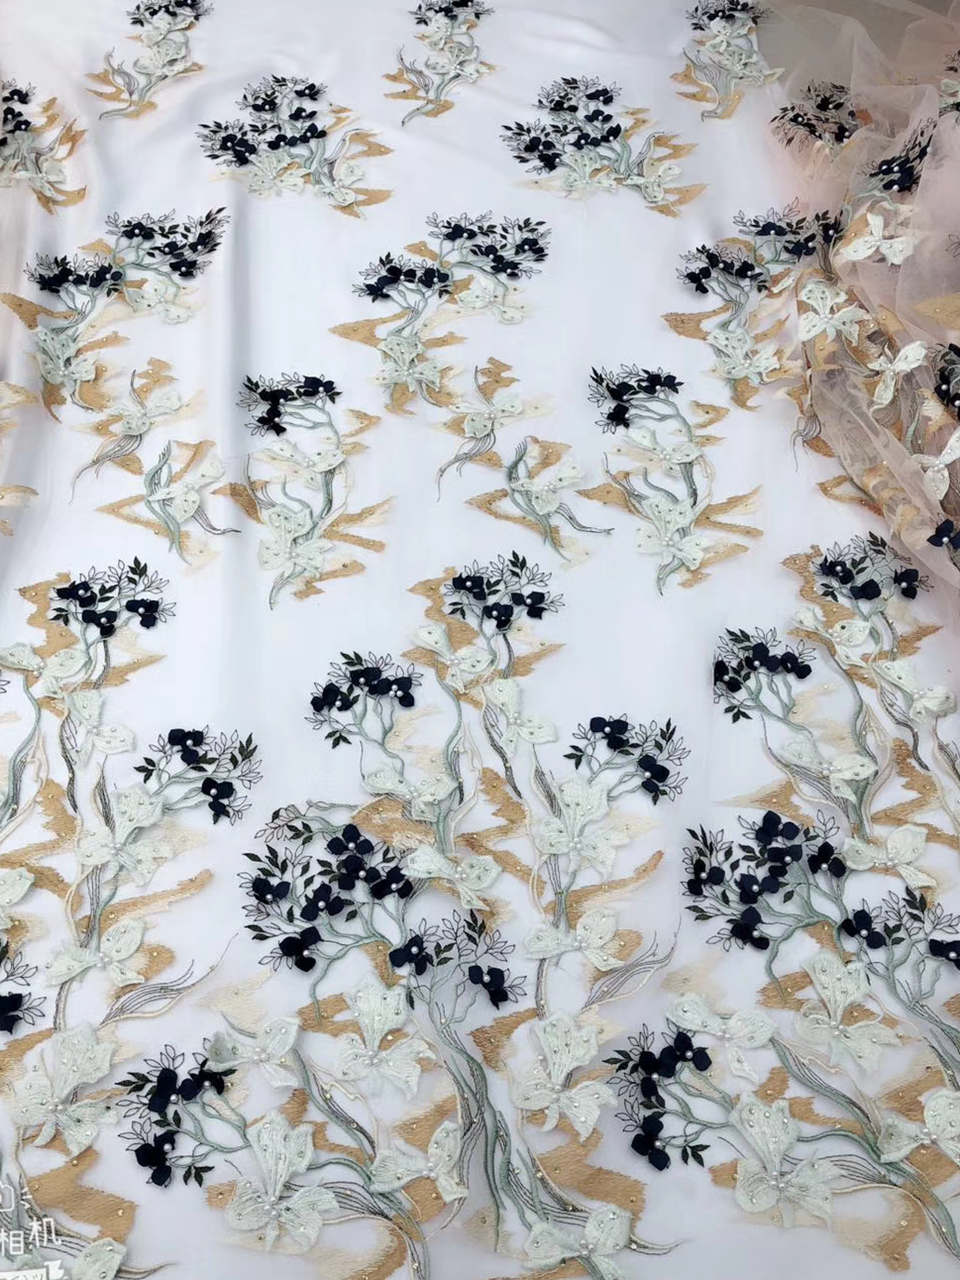 French net Fabric with beads and rhinestones 3D flower Embroidered Tulle Fabric African French Lace Fabric For Dress IG784